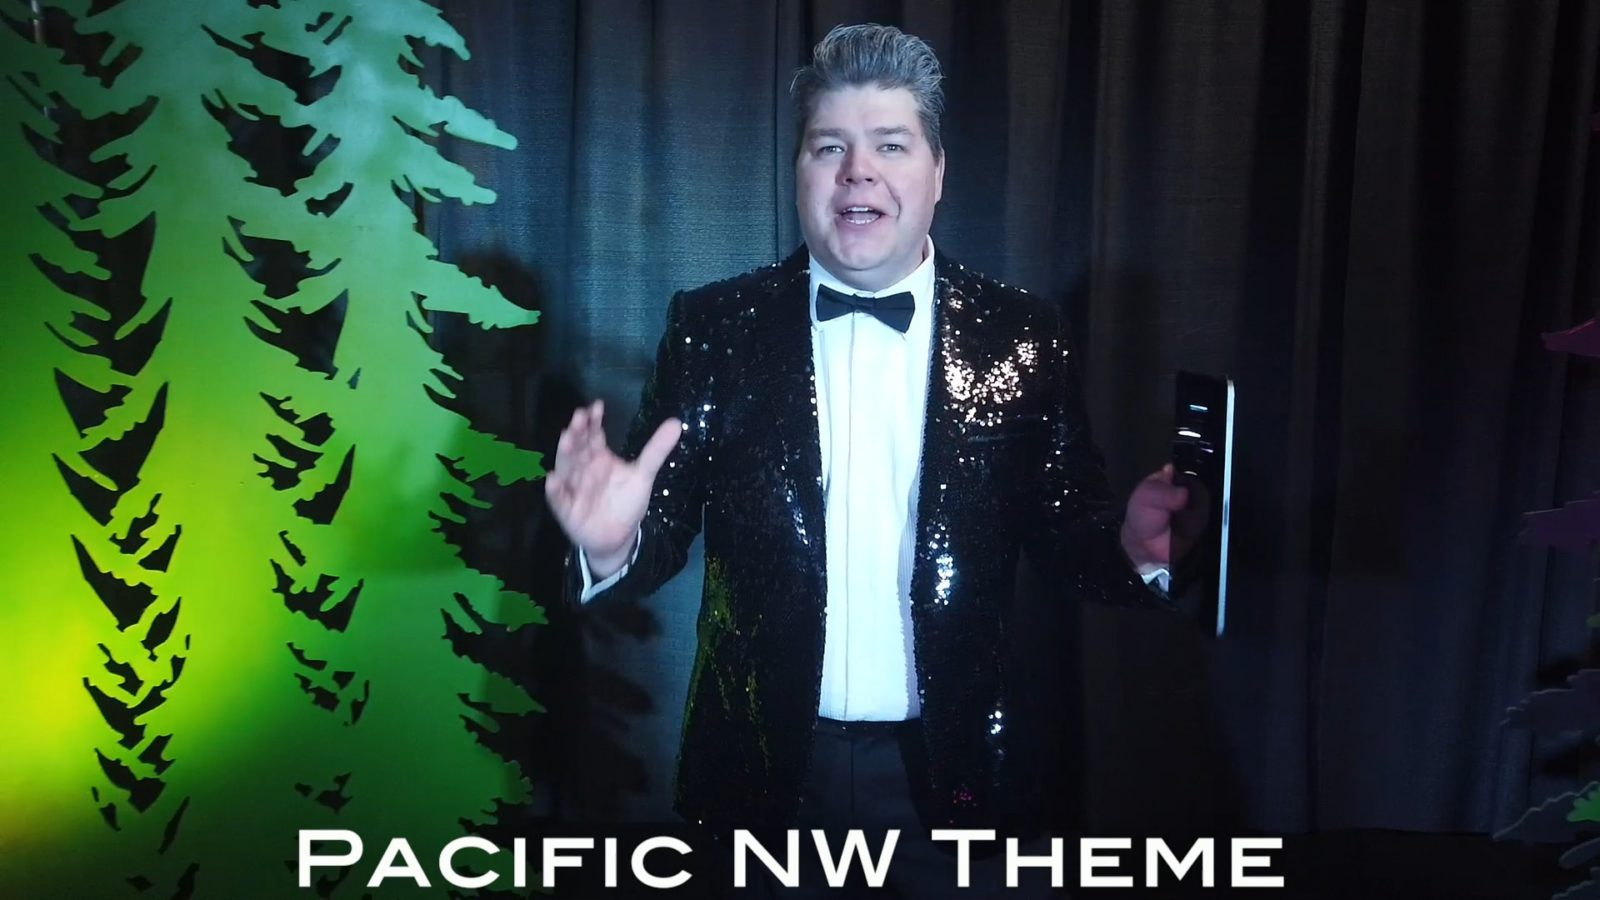 Pacific NW theme on Virtual Game Show